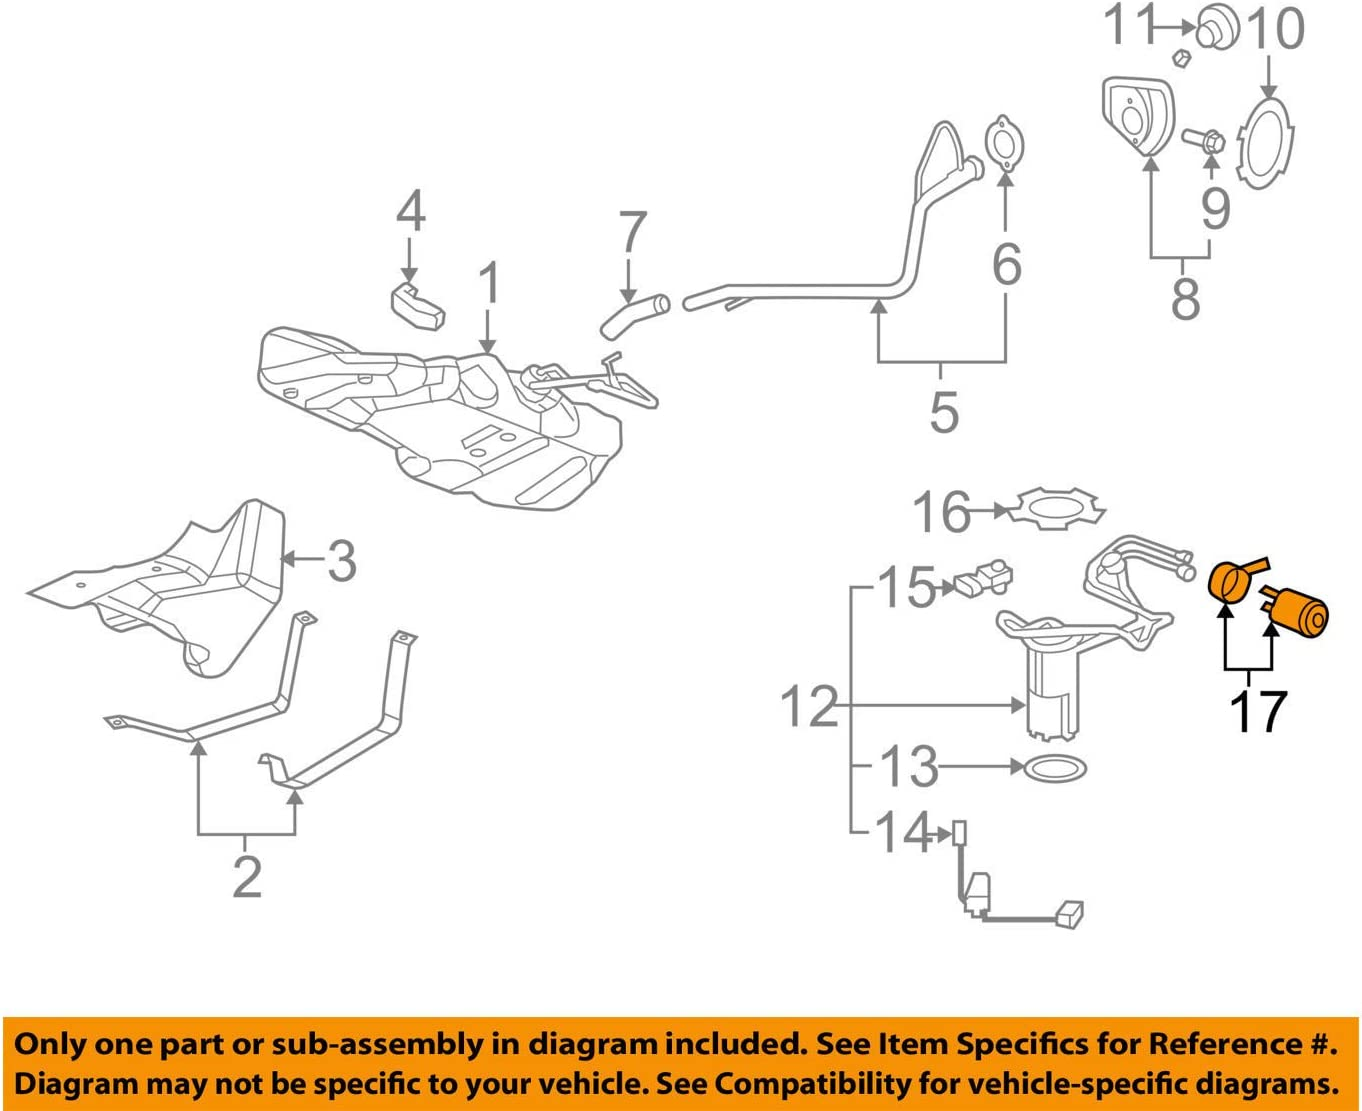 [DIAGRAM_09CH]  Amazon.com: General Motors 22734980, Fuel Filter: Automotive | 2007 Saturn Ion Fuel Filter |  | Amazon.com